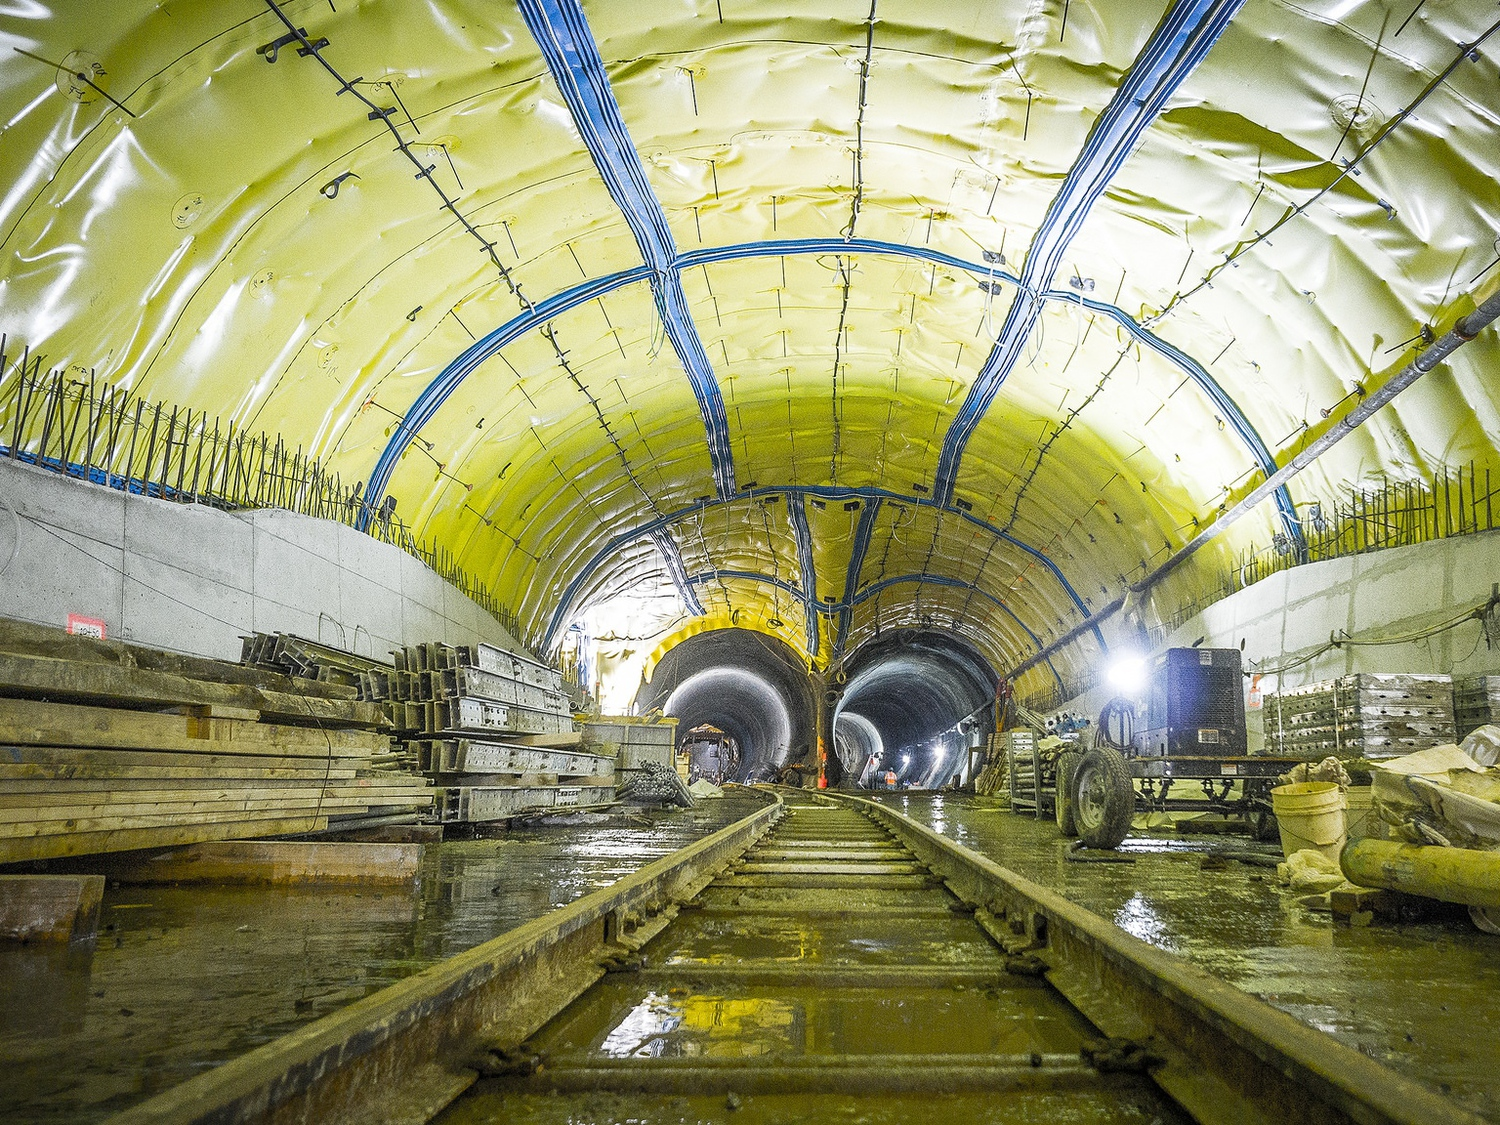 It's the biggest expansion of the city's subway system in generations.